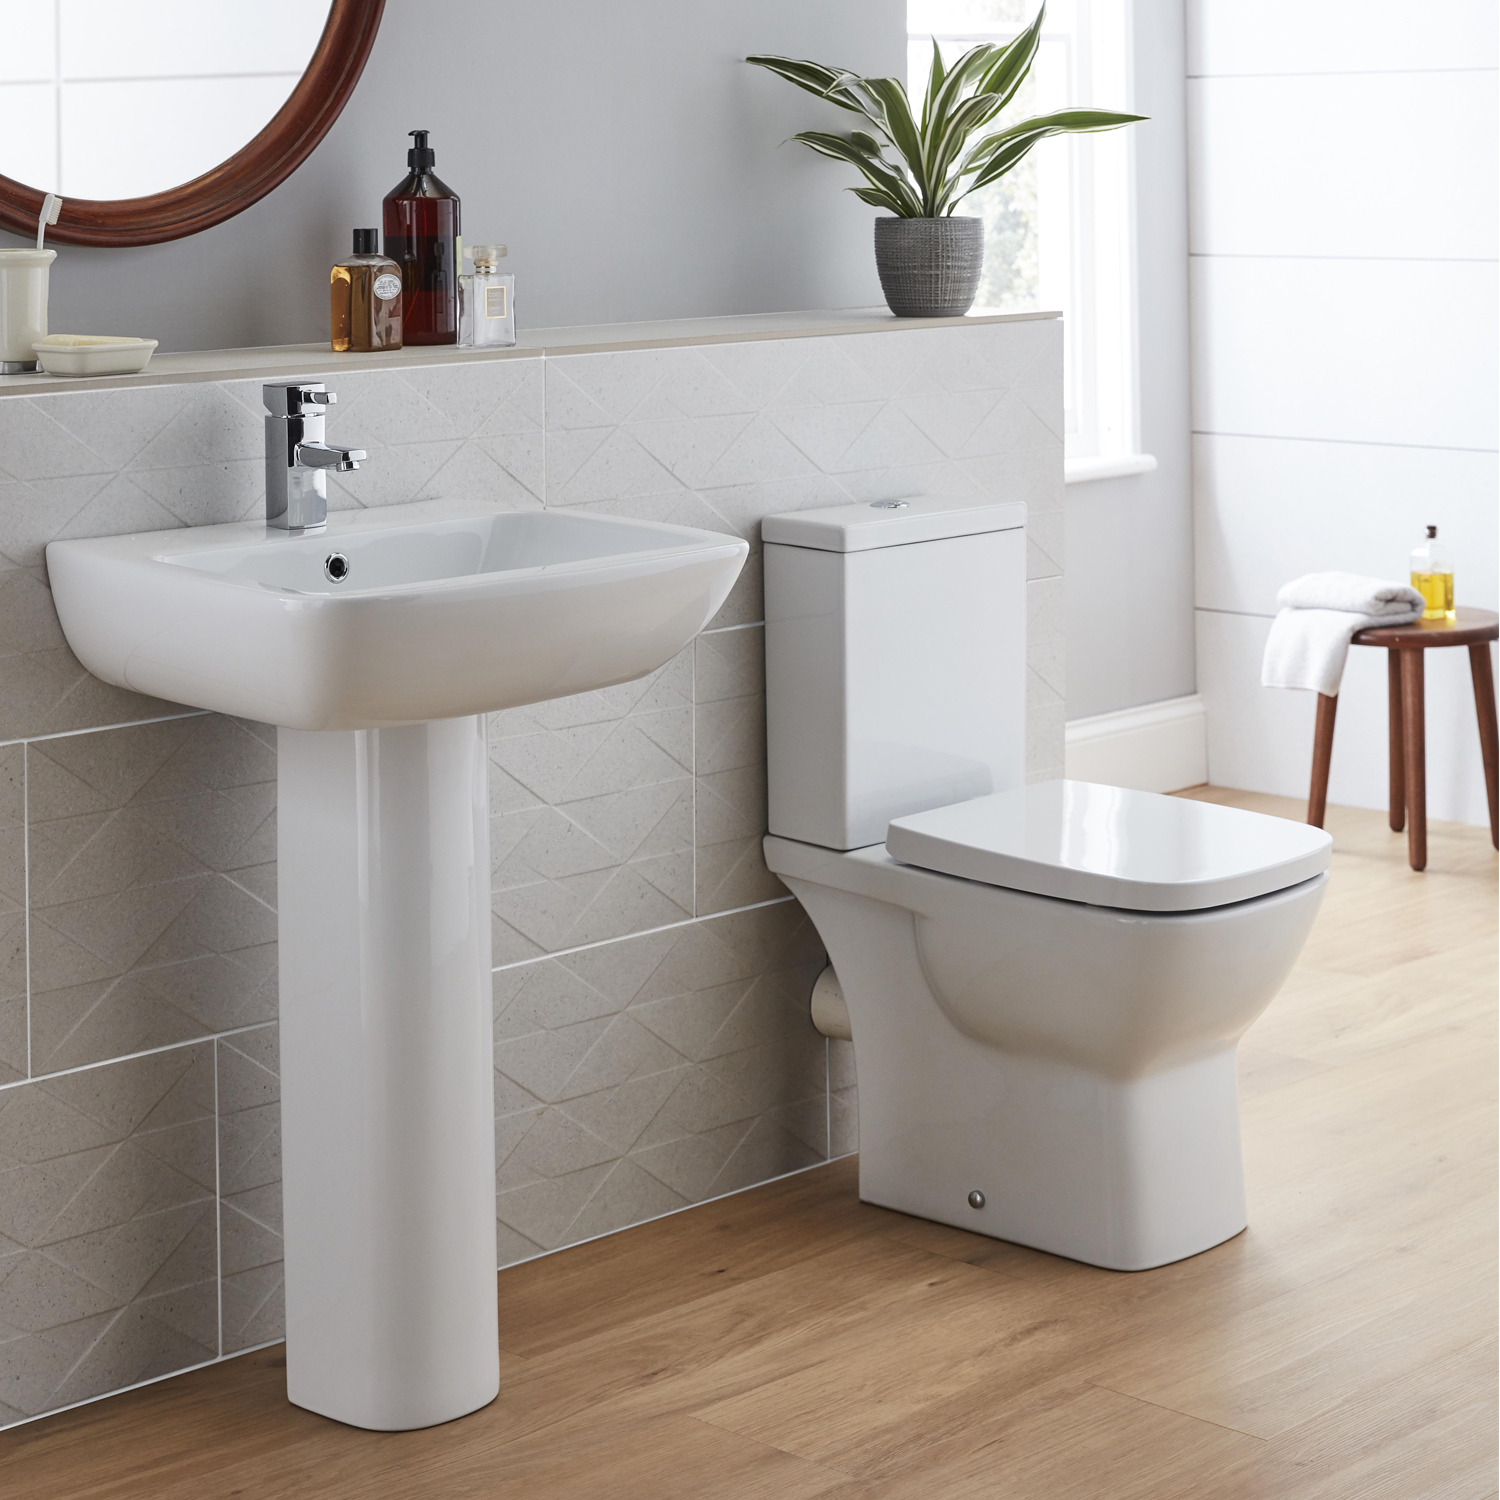 Prestige Evoque Basin with Full Pedestal 570mm Wide - 1 Tap Hole-0